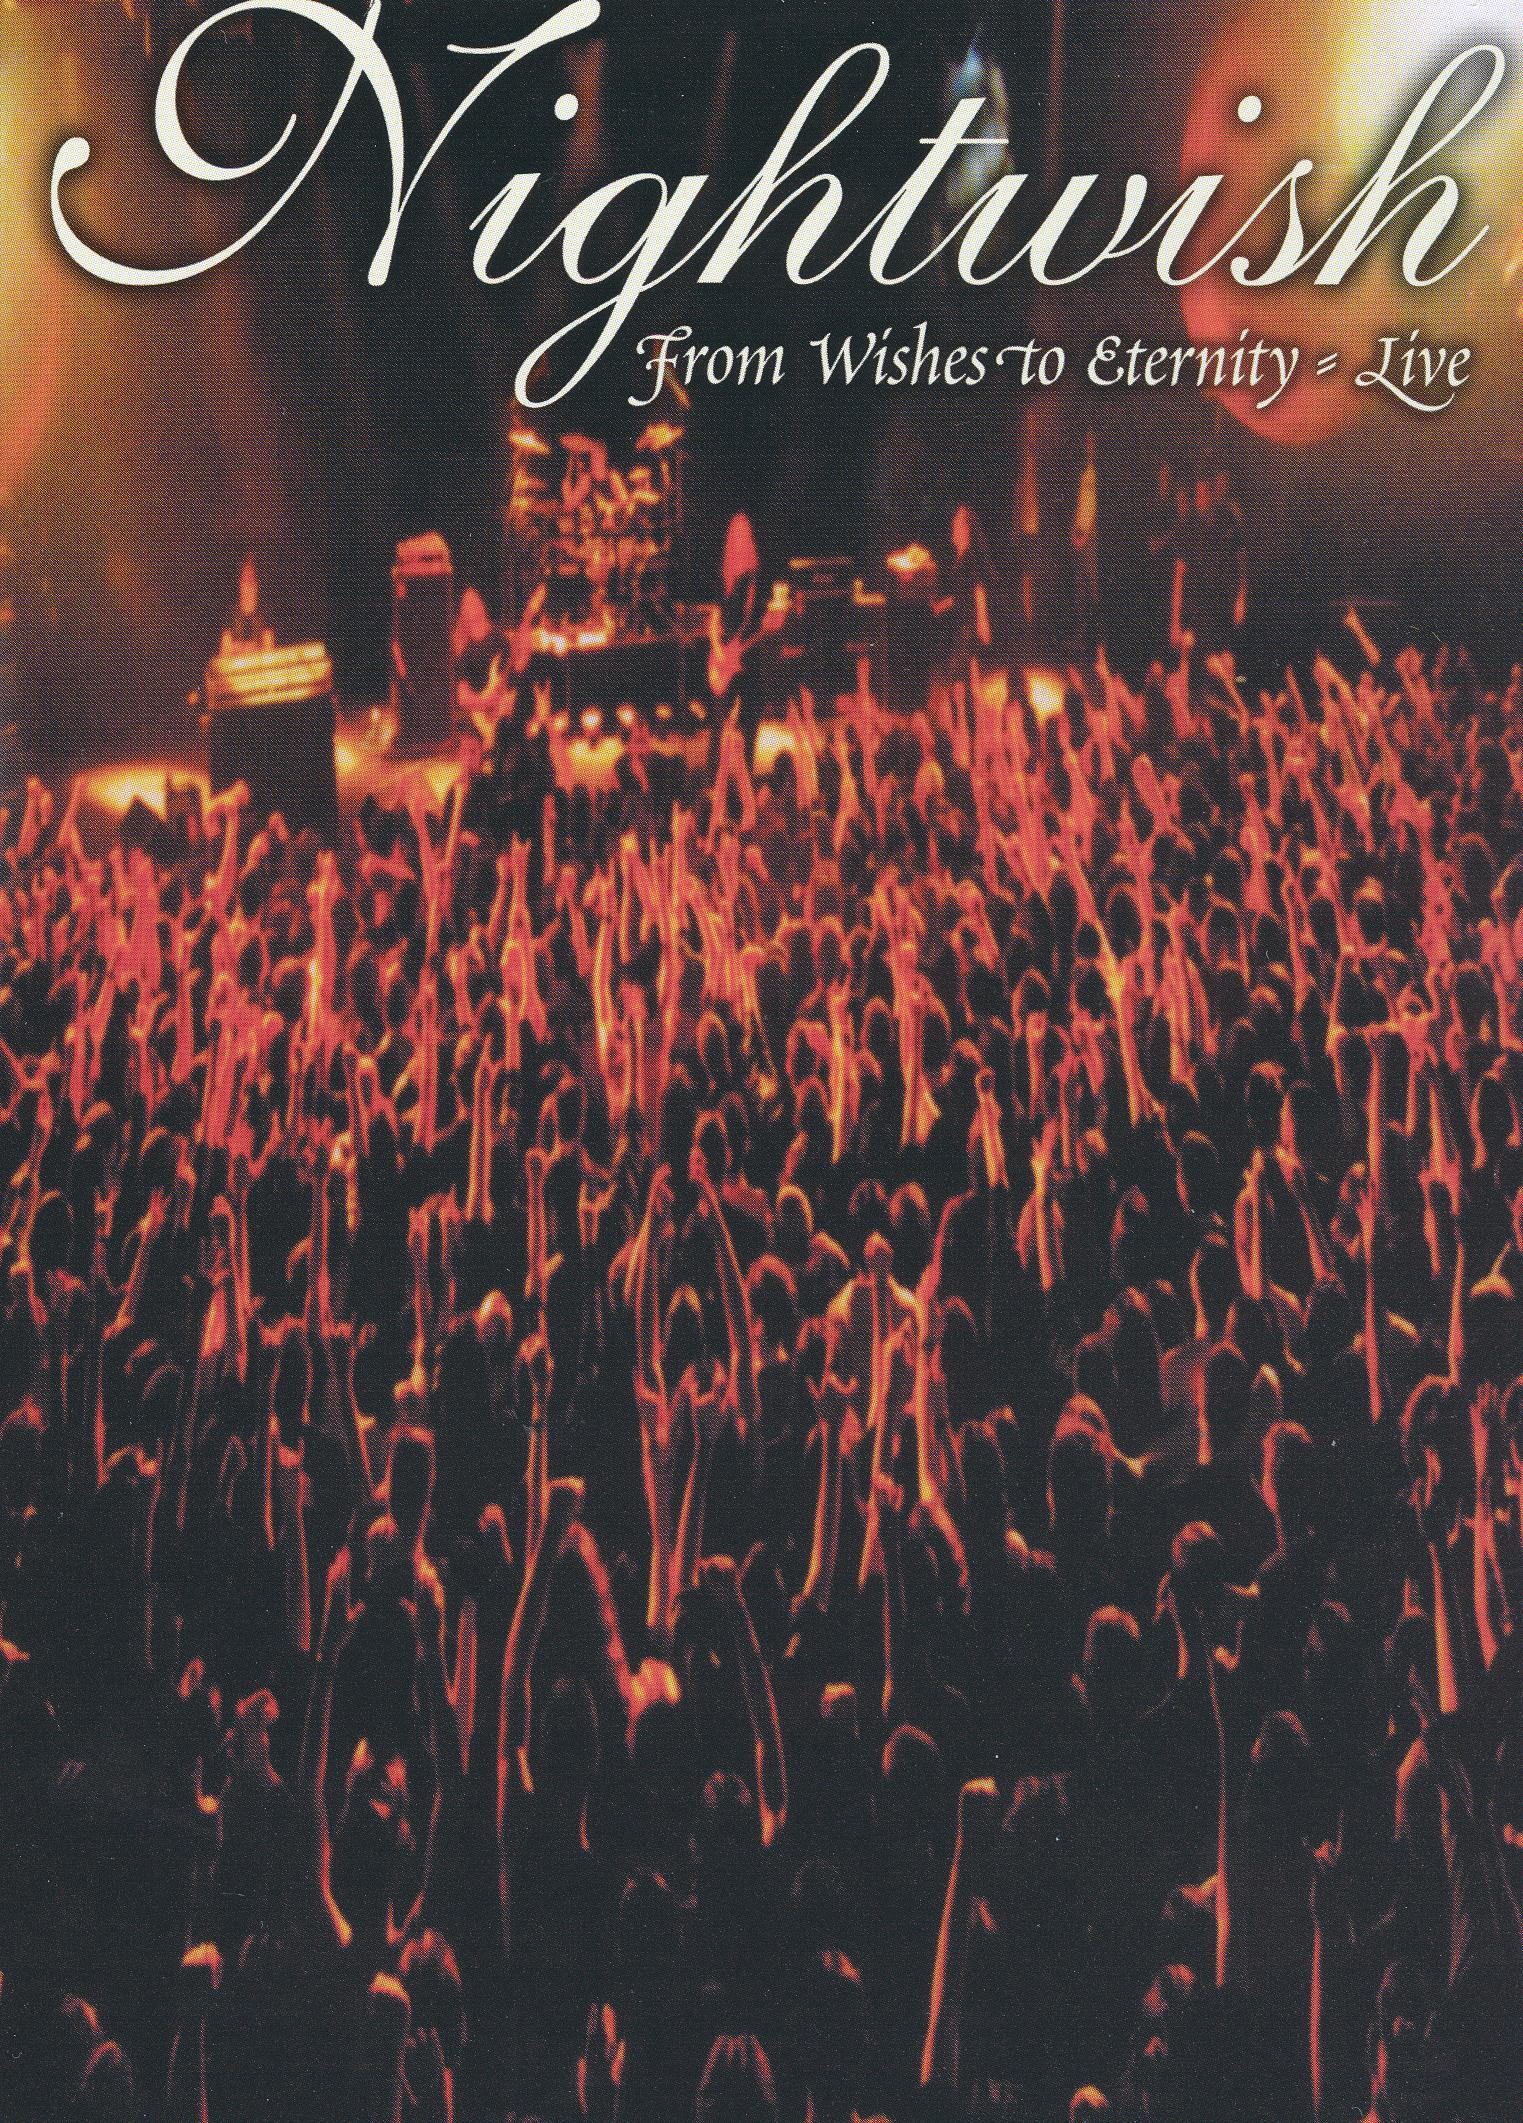 Nightwish: From Wishes to Eternity - Live